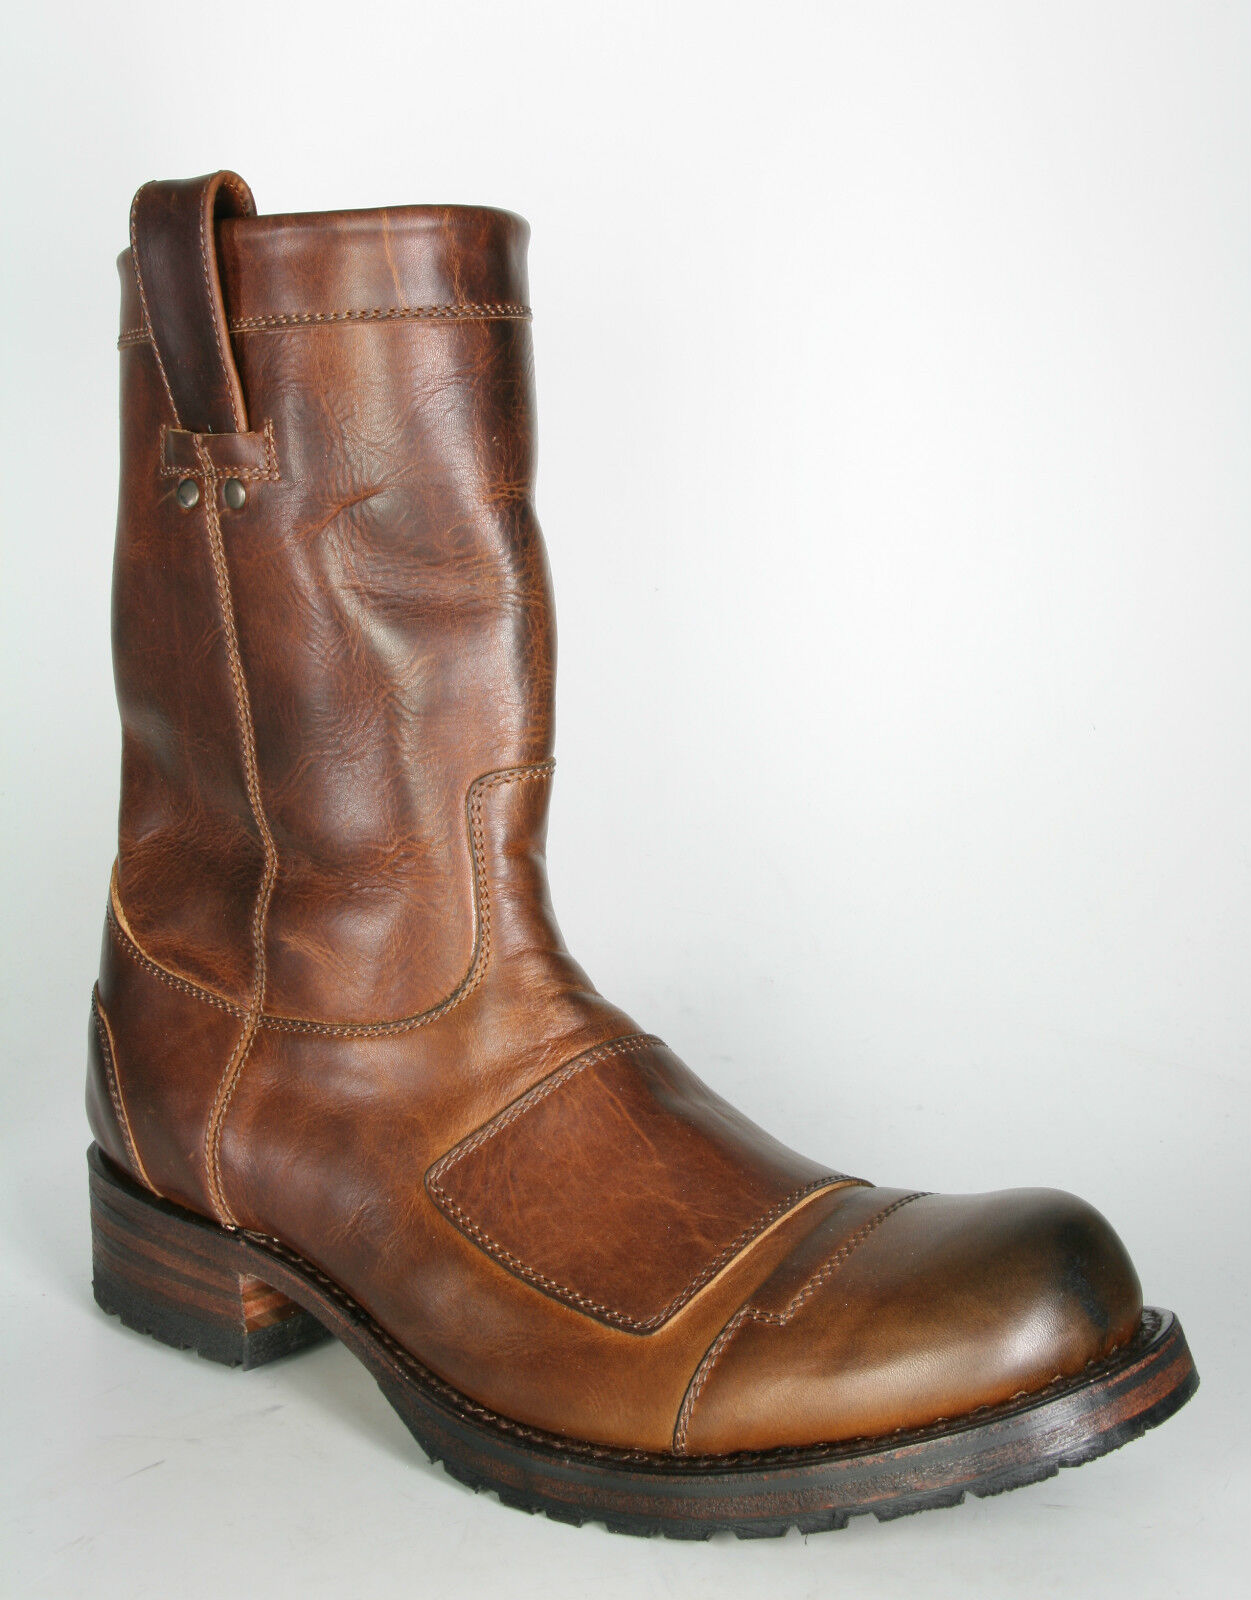 9807 Sendra Stiefel MAY Evolution Tang brown Bikerboots